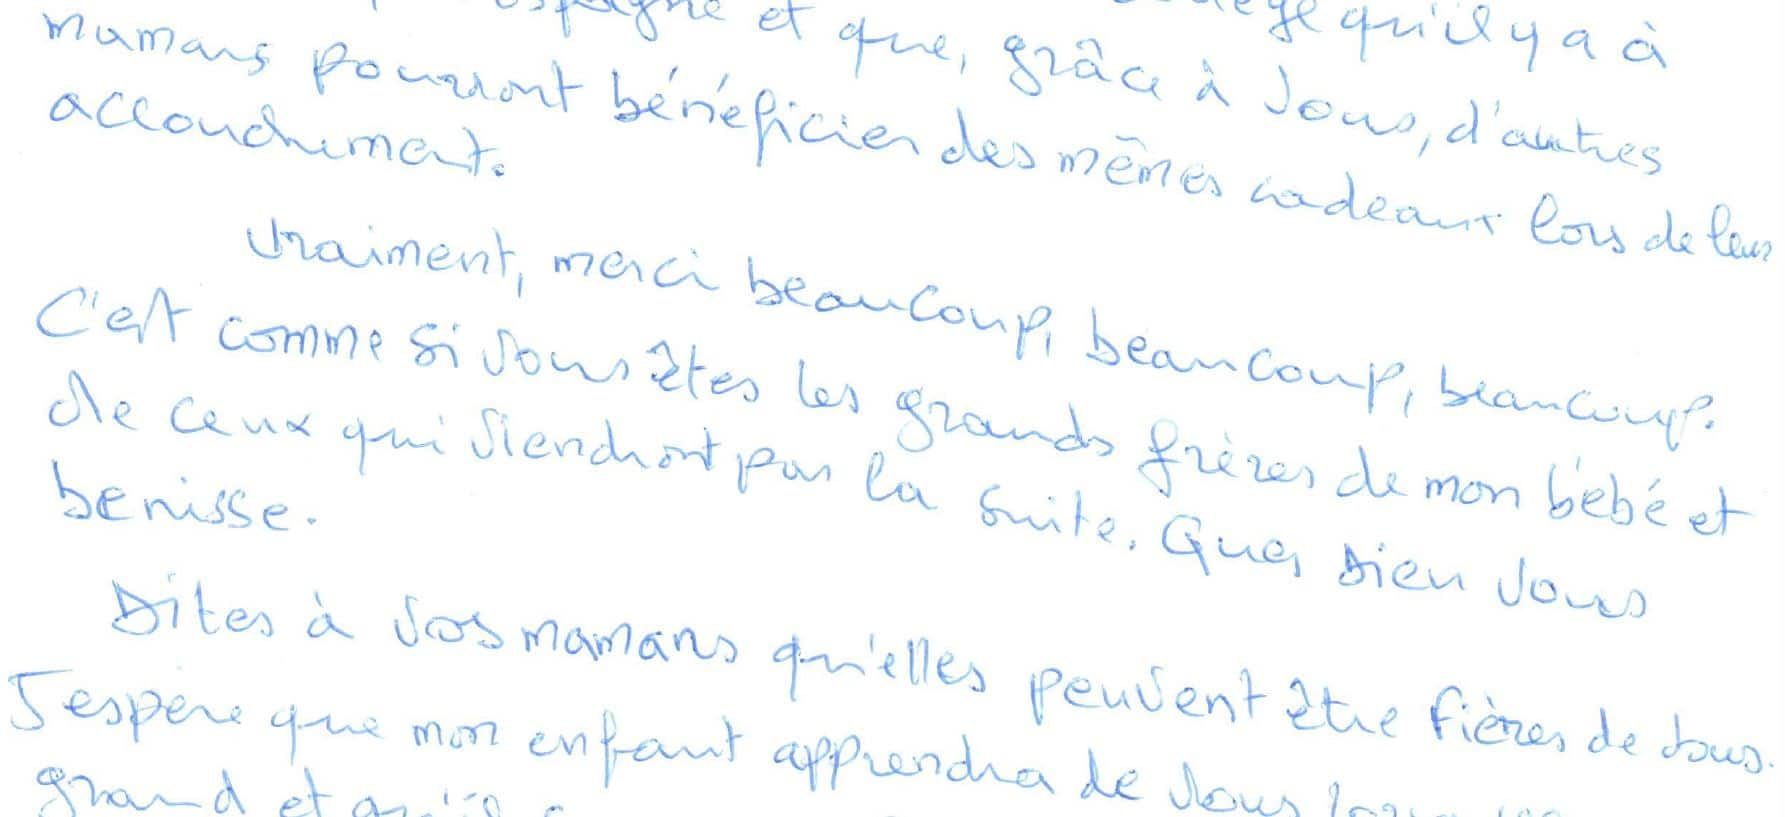 Carta d'una mare als alumnes de Viaró Global School